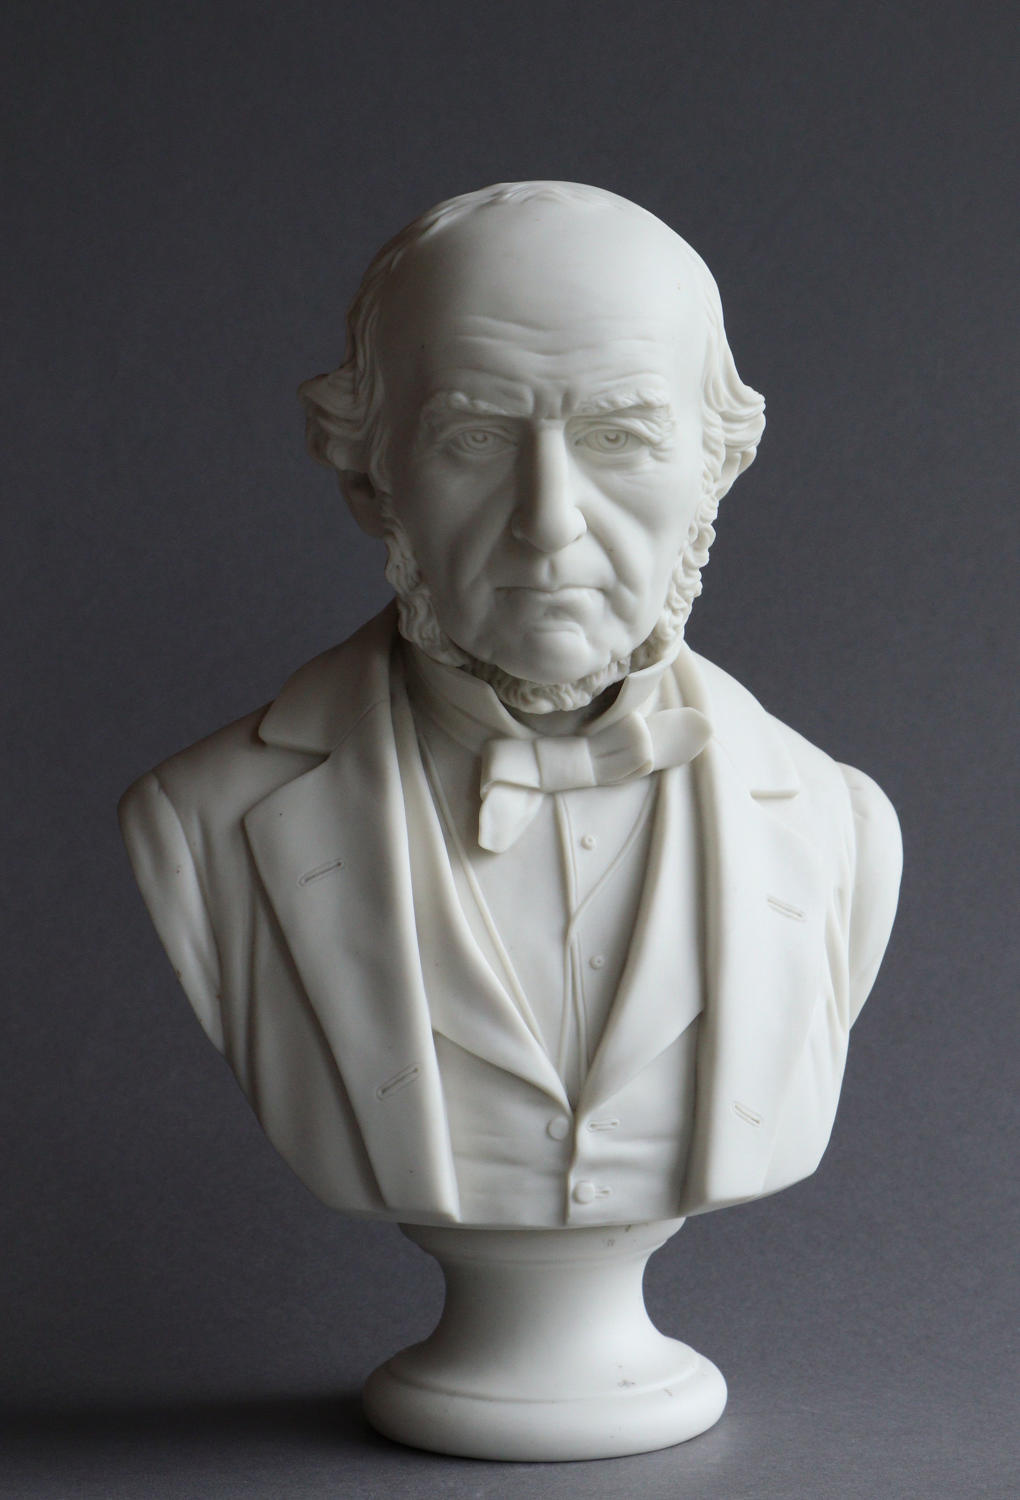 A Parian bust of William Gladstone